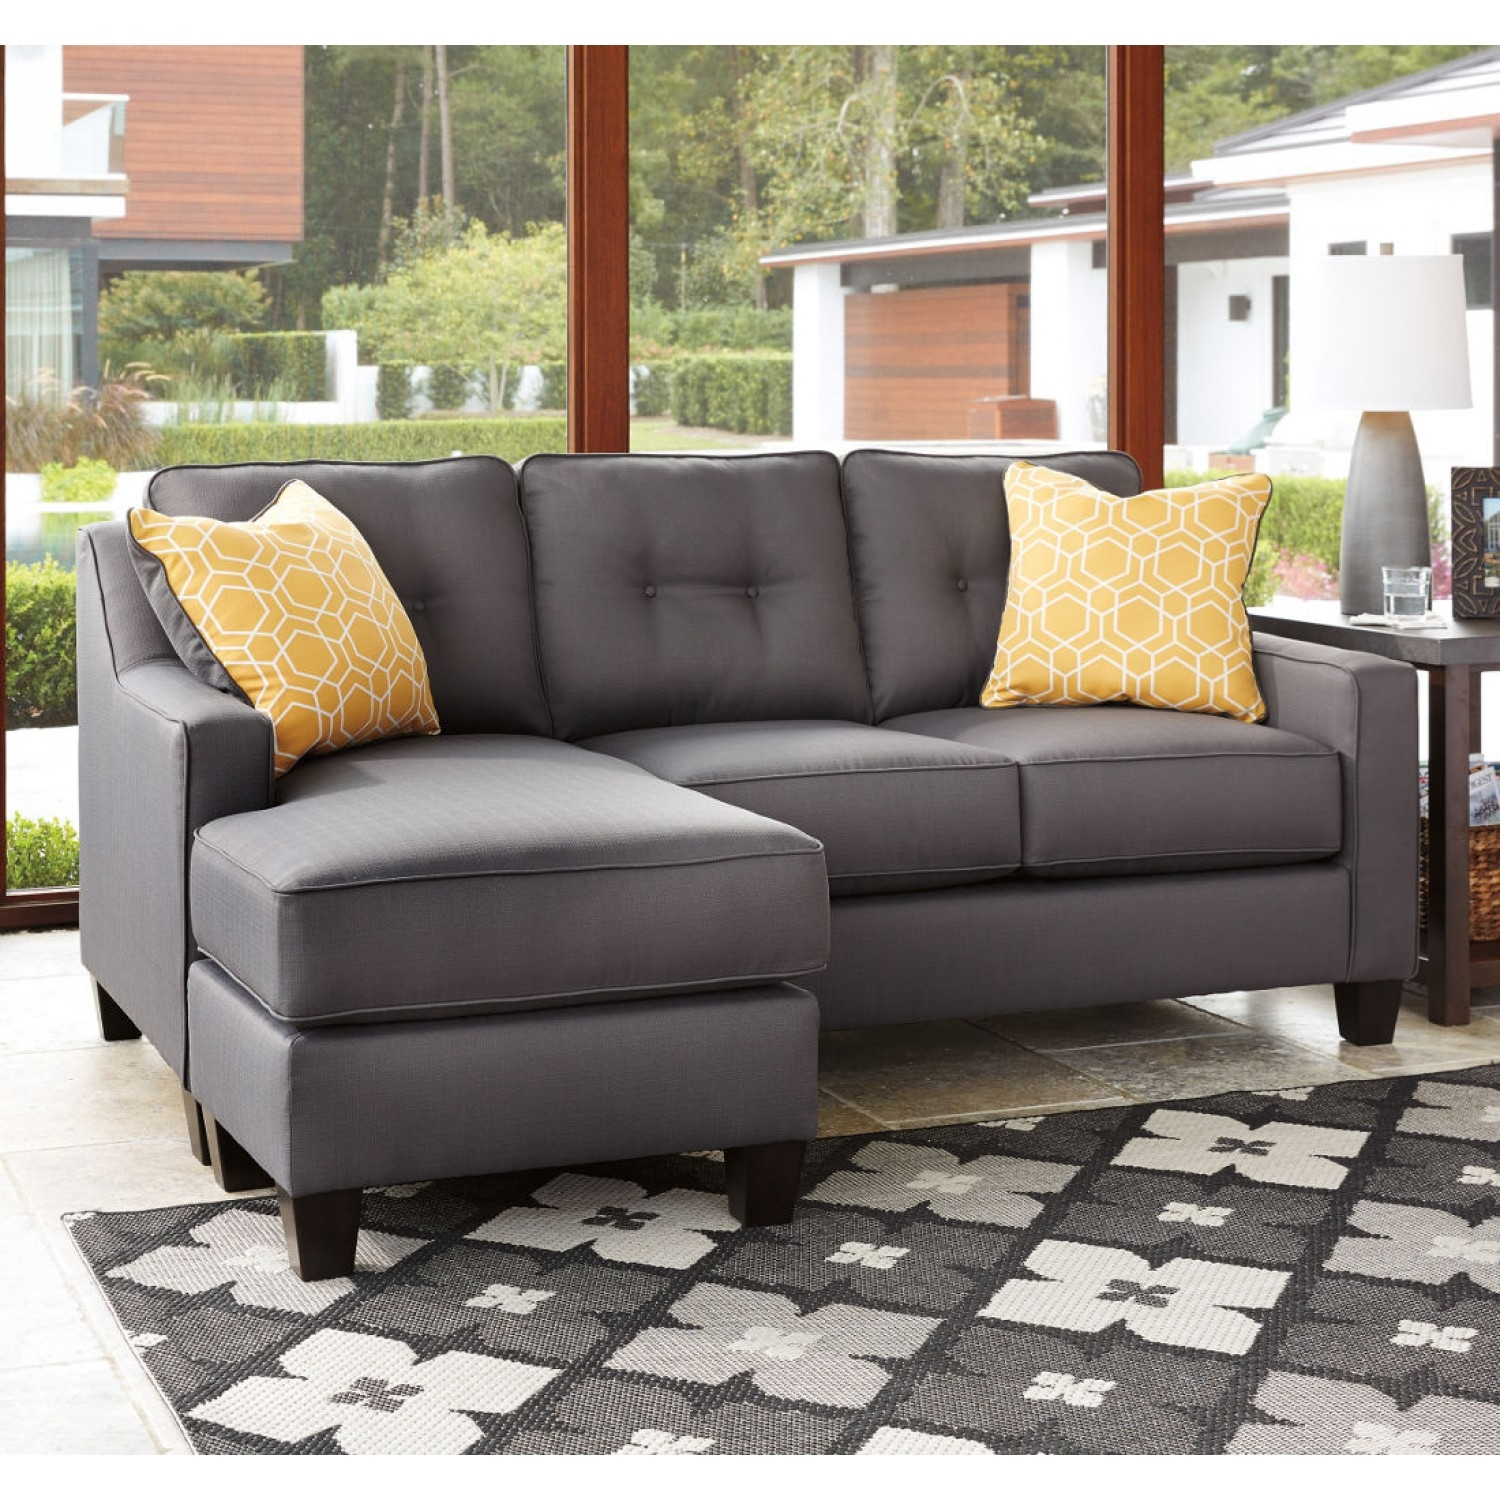 Ashley Furniture Aldie Nuvella Sofa Chaise In Gray Local In Ashley Furniture Gray Sofa (View 7 of 12)